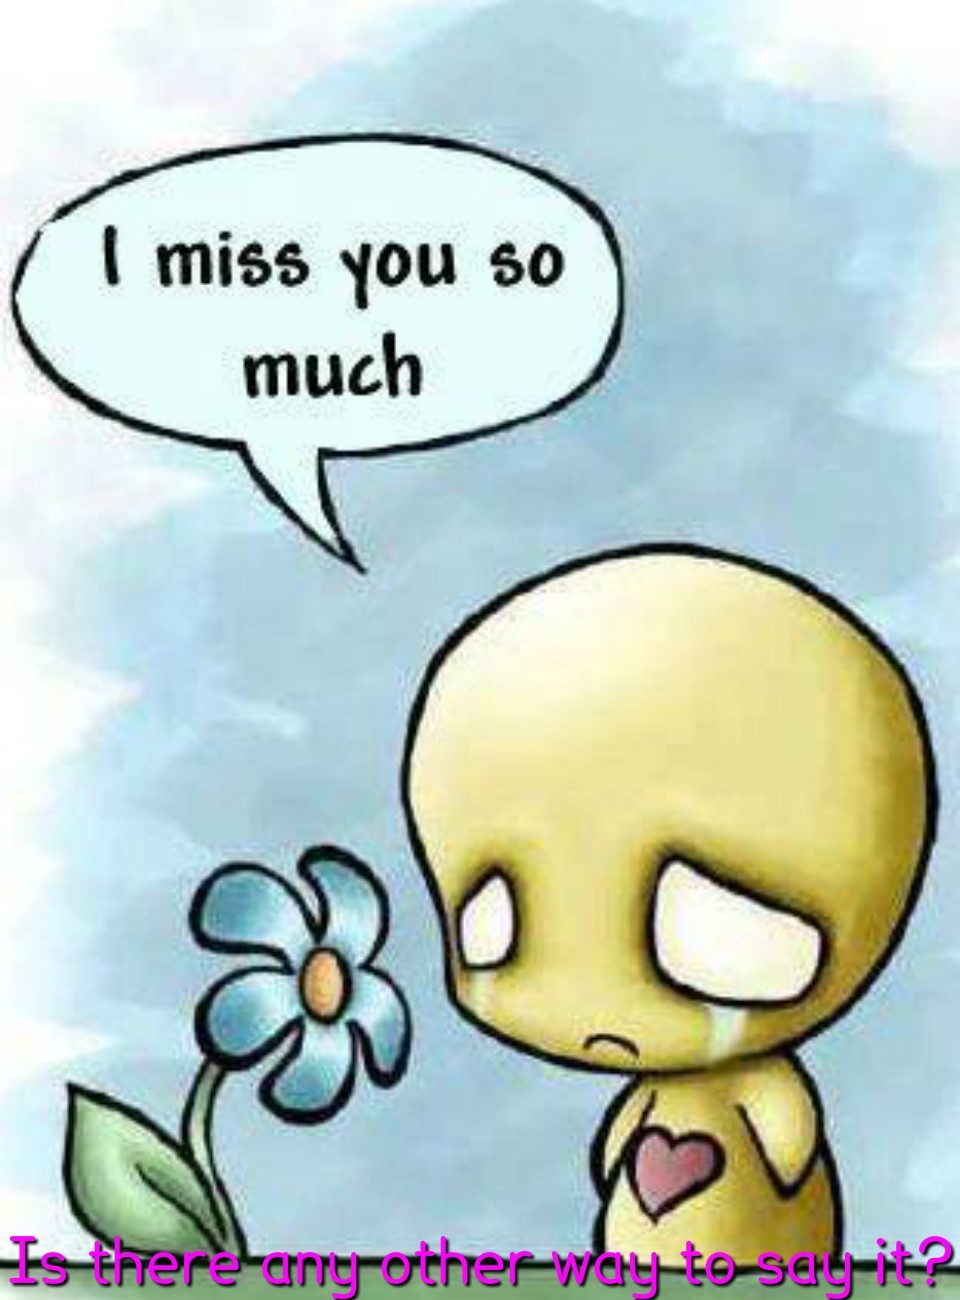 I Miss You So Much Sad Storemypic